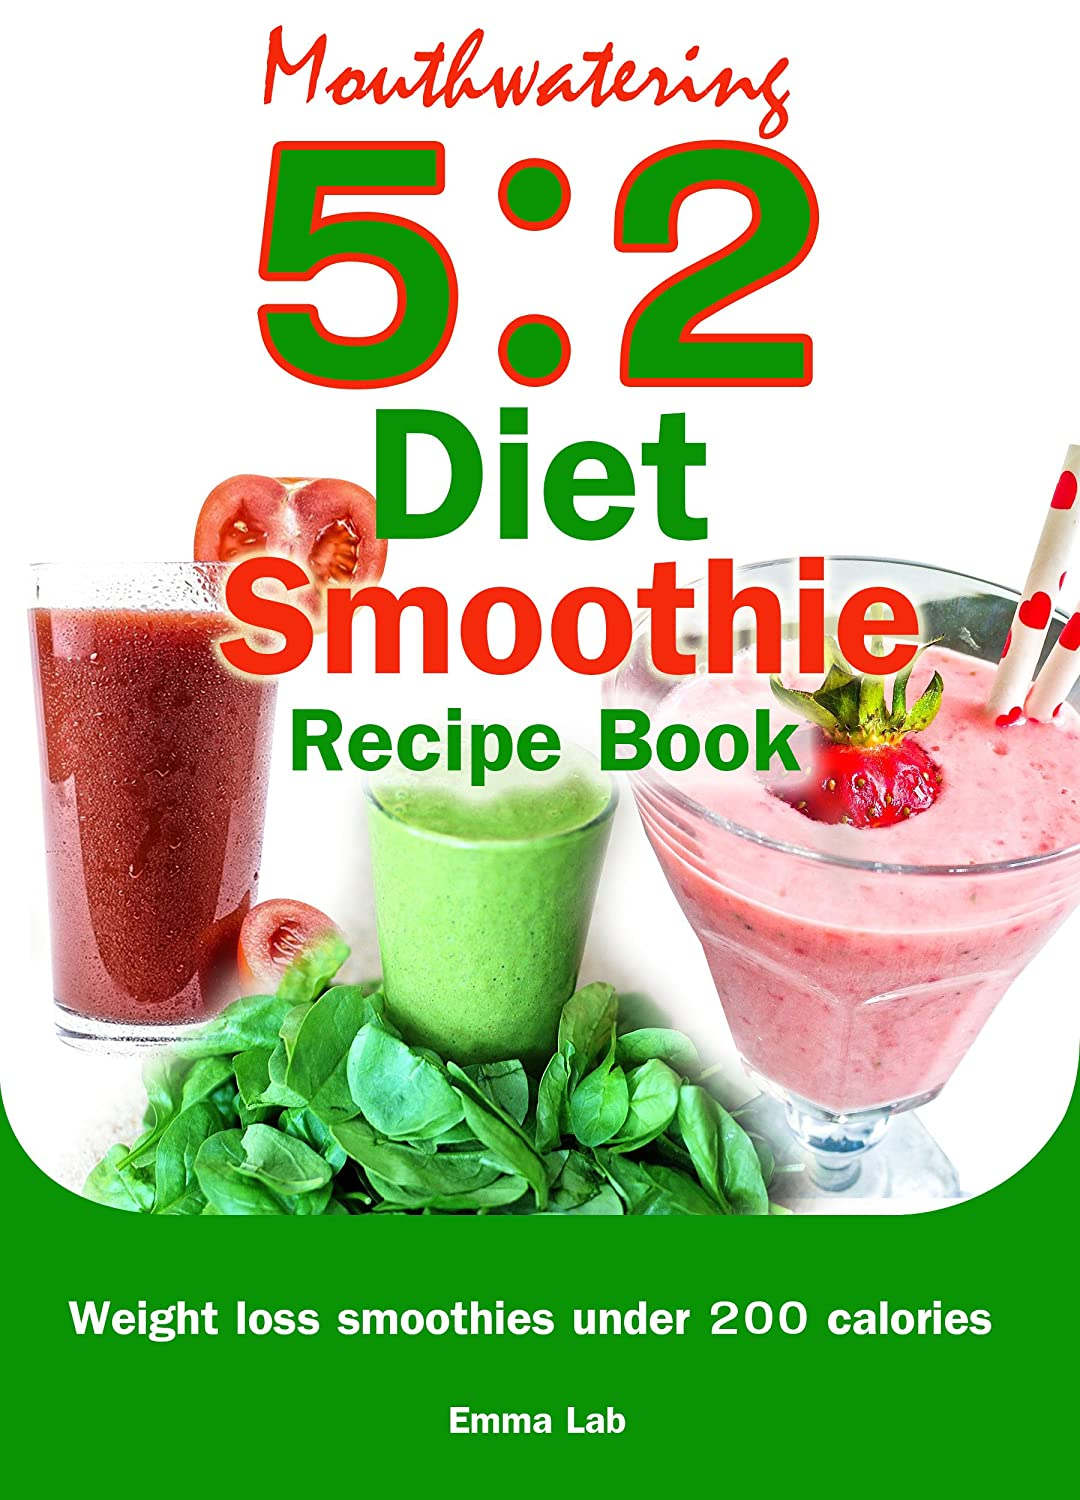 Mouthwatering 5 2 Diet Smoothie Recipe Book Weight Loss Smoothies Under 200 Calories Ebook Lab Emma Amazon Com Au Kindle Store